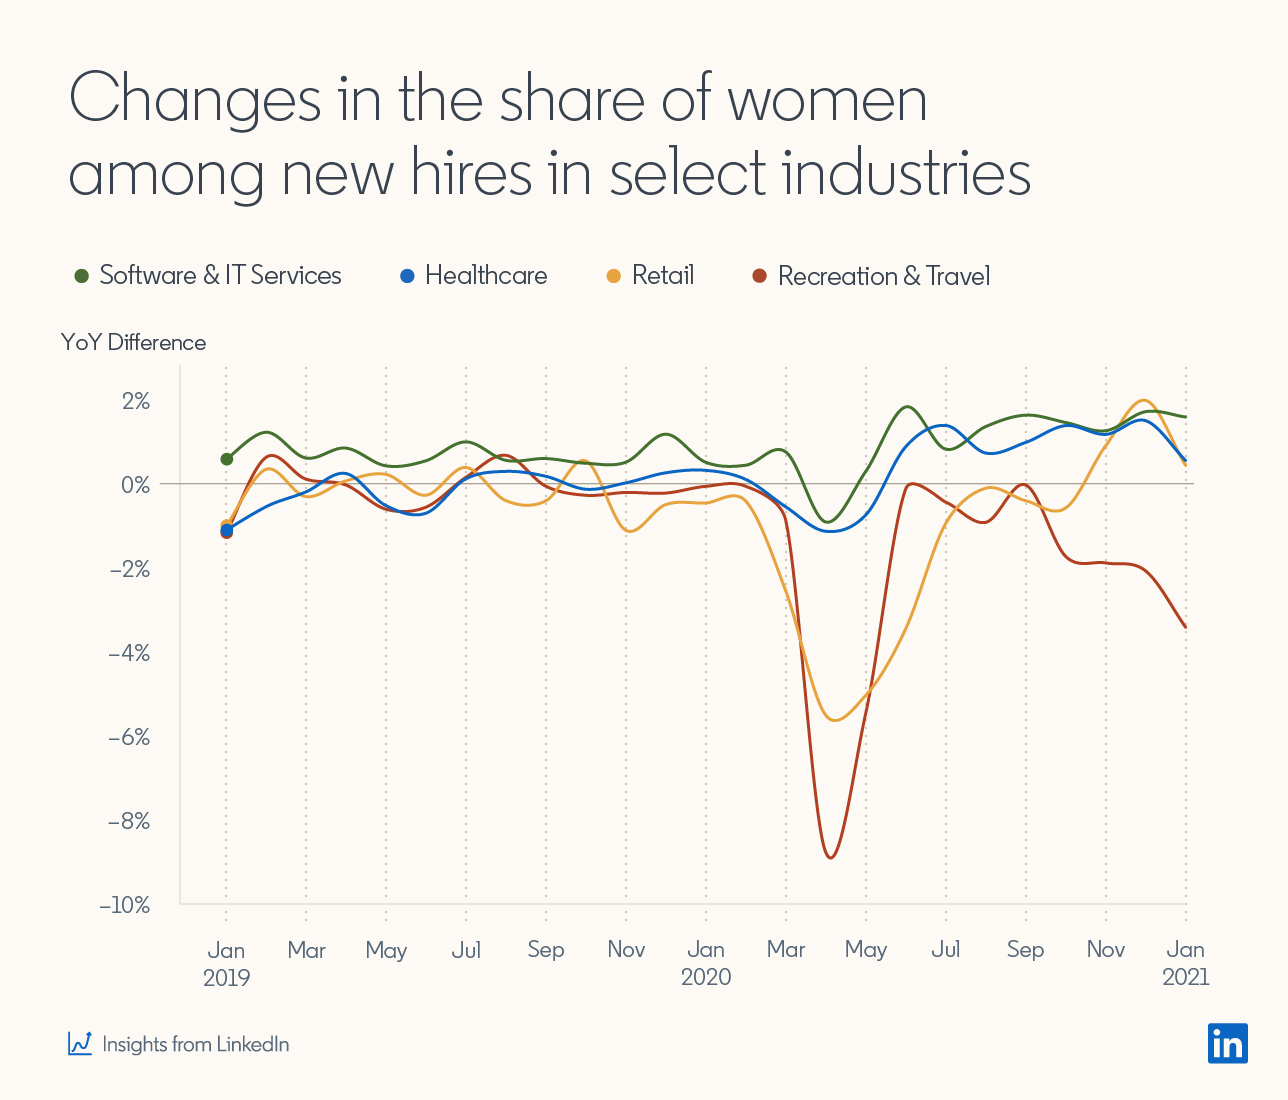 Line graph showing:  Changes in the share of women among new hires in select industries, including Software & IT Services, Healthcare, Retail, and Recreation & Travel.  Graph shows dip in all four of those industries between March and April 2020 (although the dip in Software & IT and Healthcare are much less pronounced), with gradual recovery by Jan 2021.